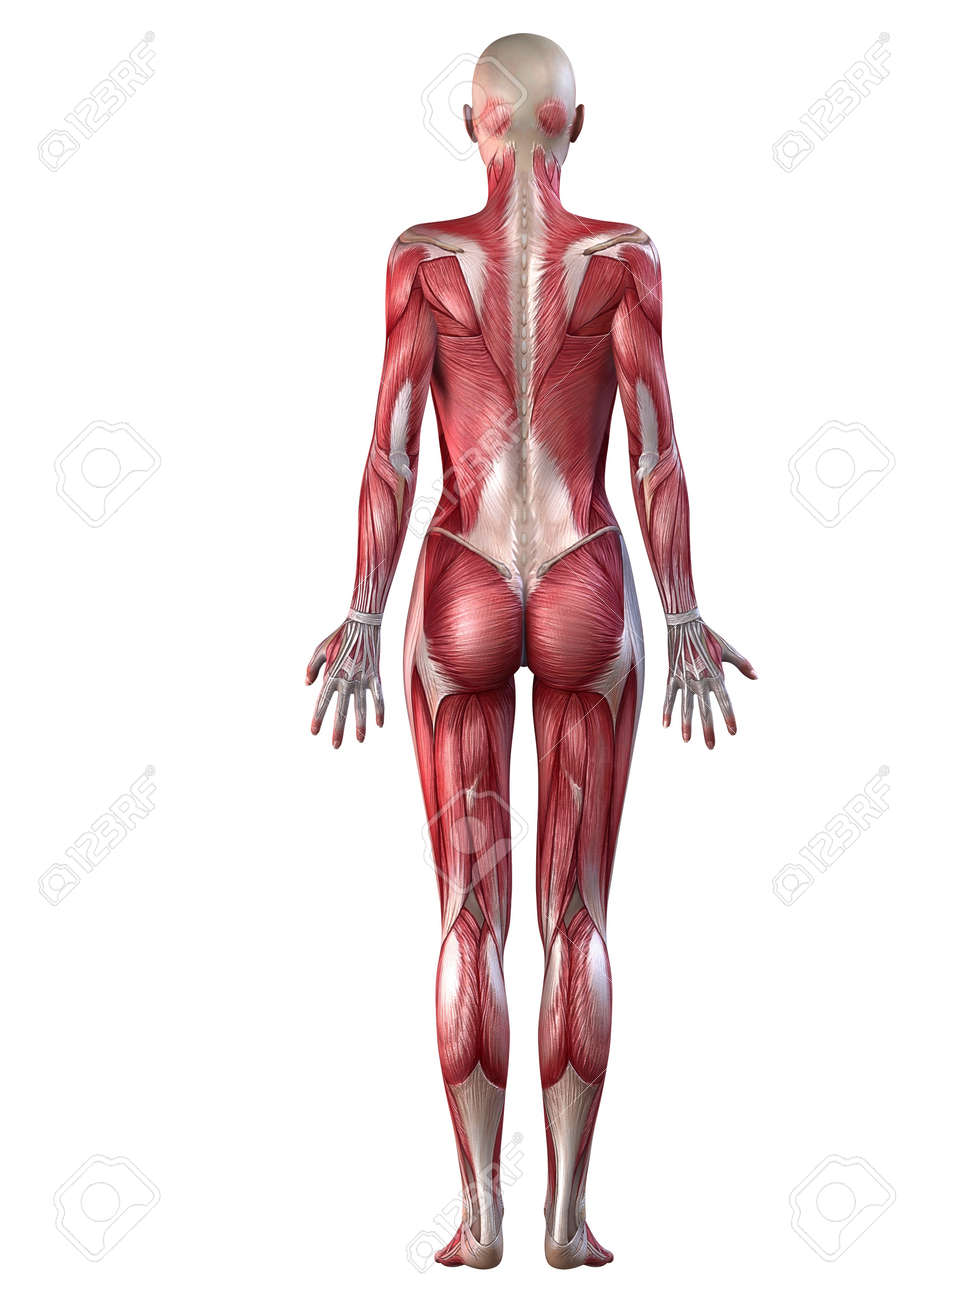 Female Muscular System Stock Photo, Picture And Royalty Free Image ...